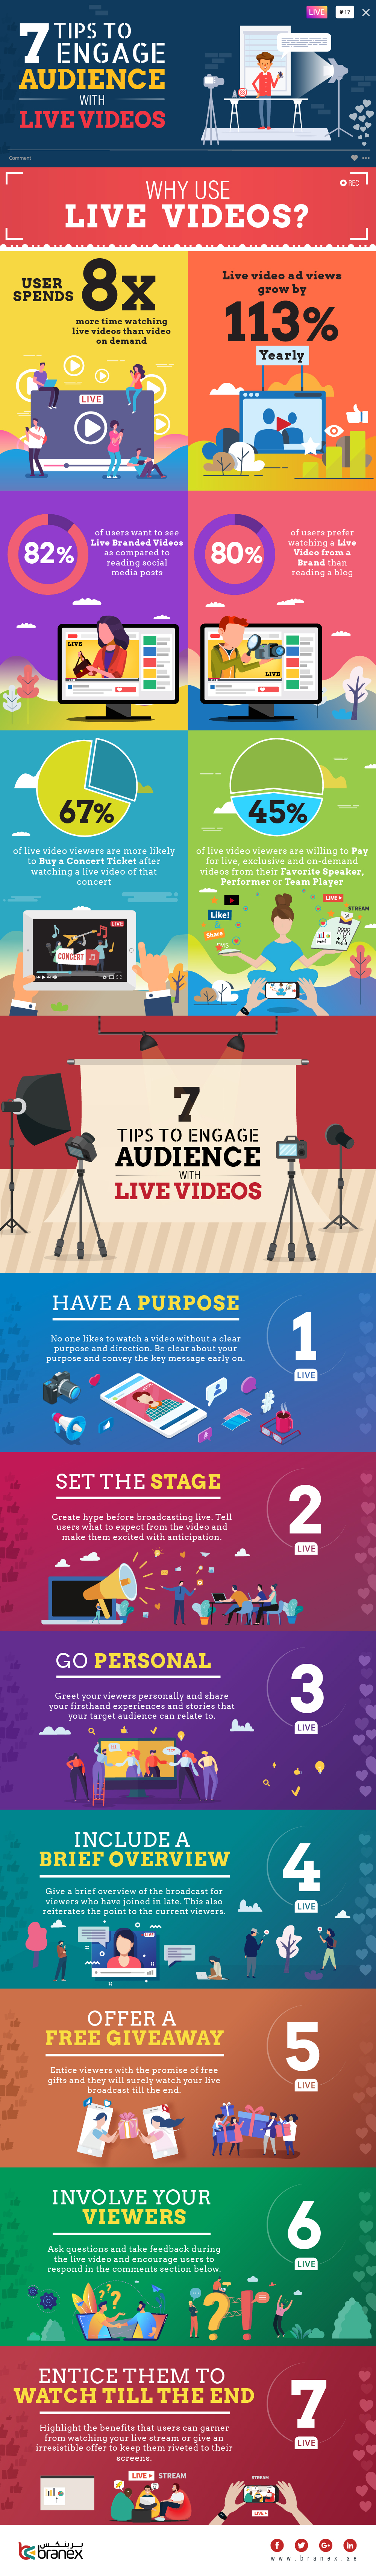 7 Useful Tips To Engage Audience With Live Videos- v2-01